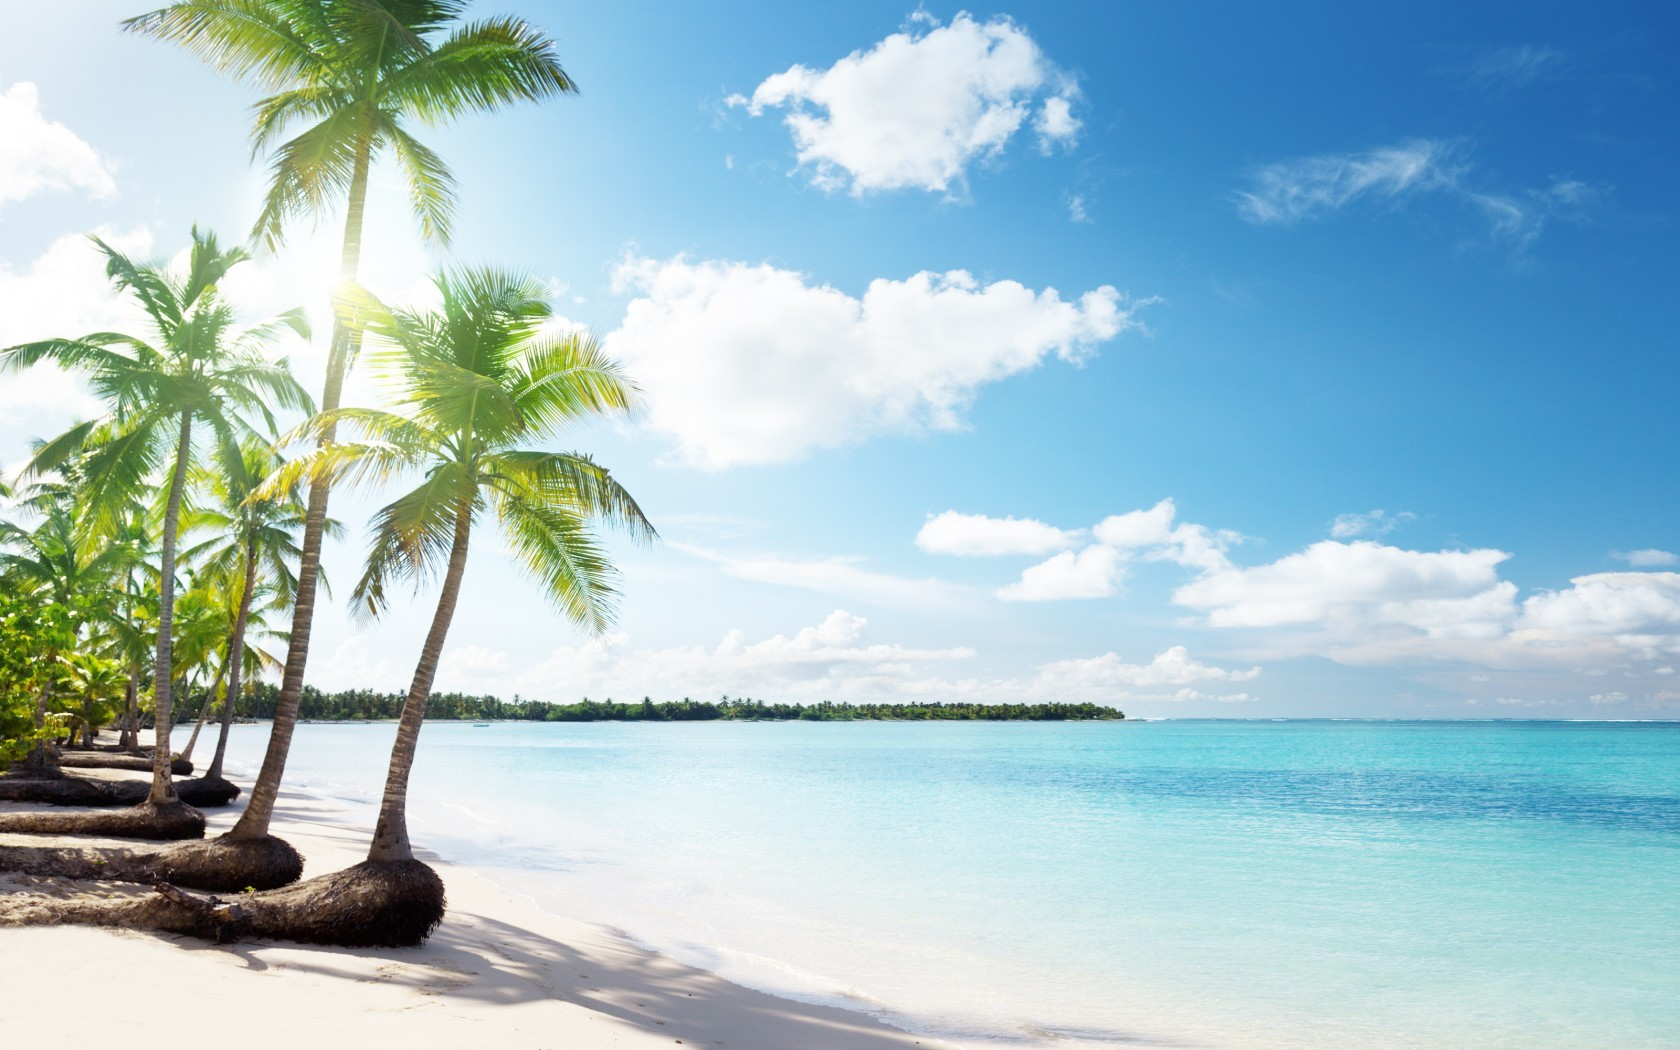 21234 download wallpaper Landscape, Sea, Beach, Palms screensavers and pictures for free